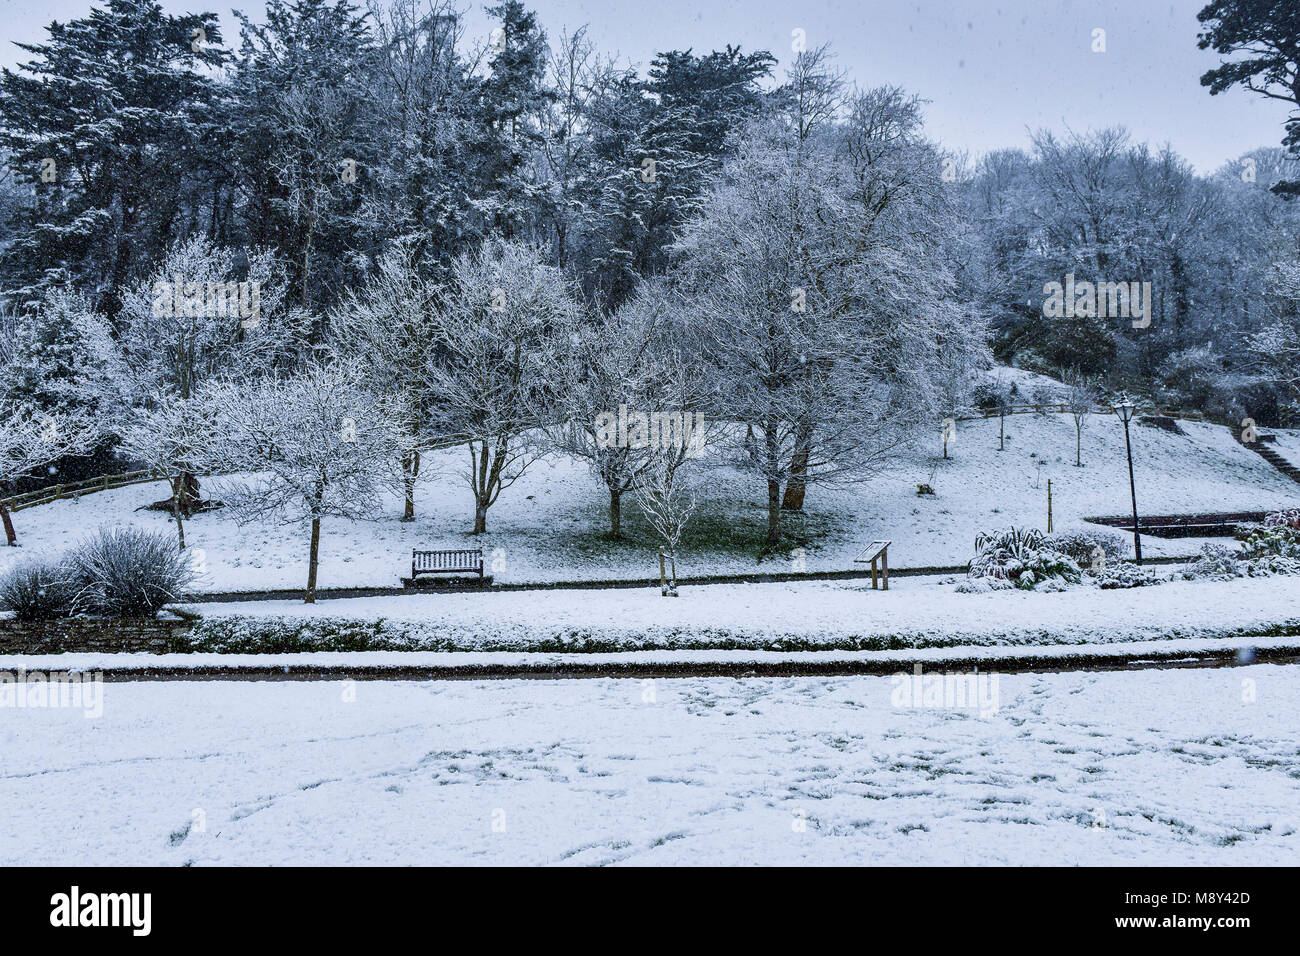 Trenance Gardens in Newquay Cornwall covered in snow. - Stock Image